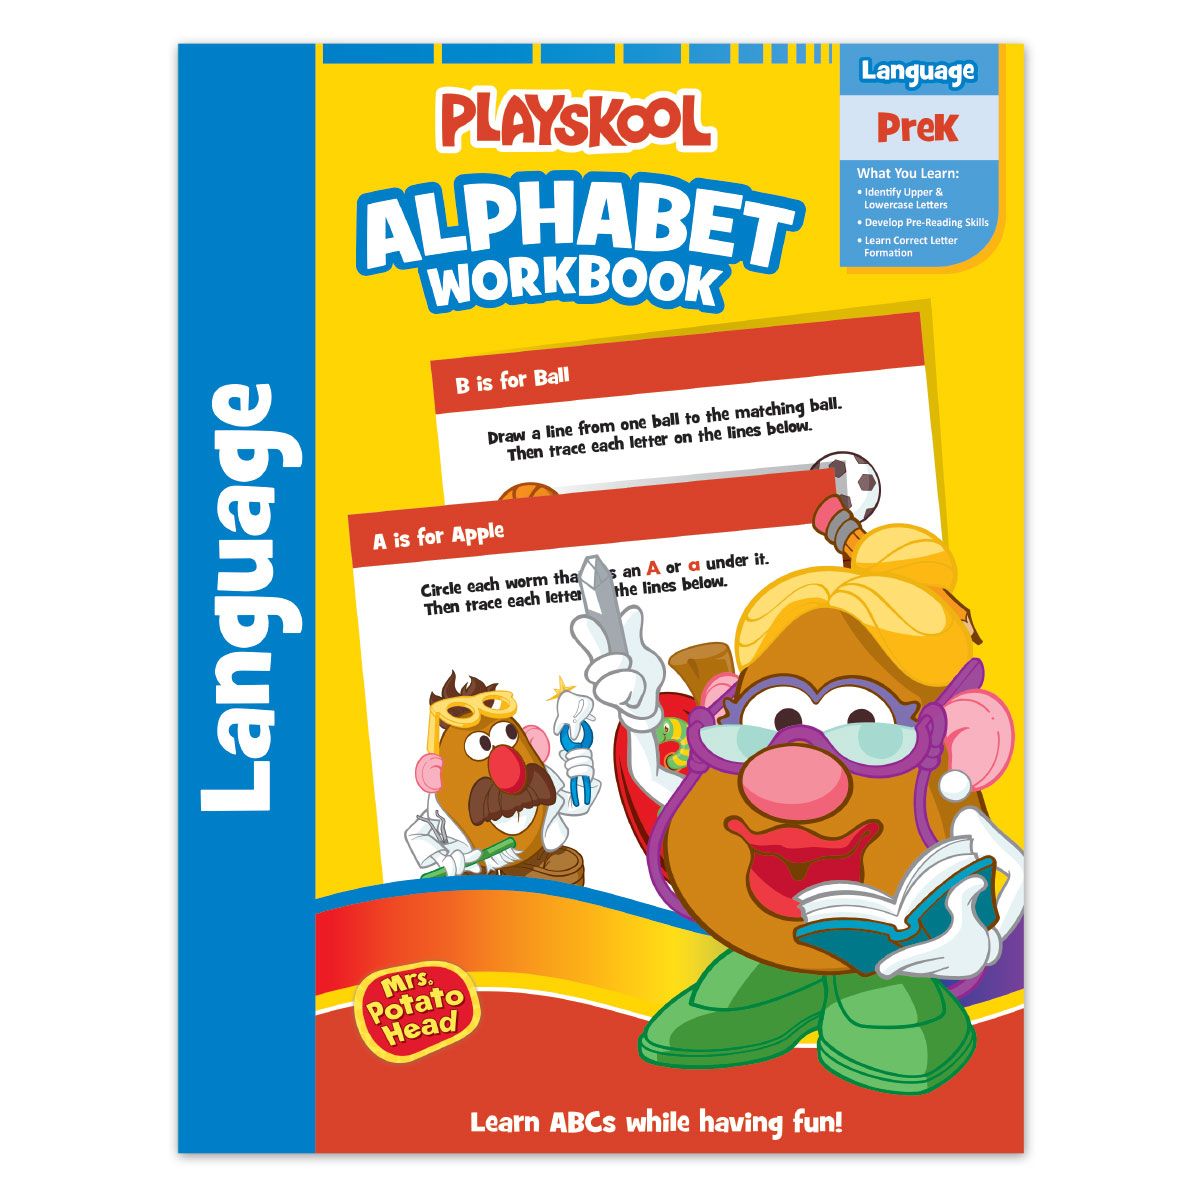 Workbooks prek workbooks : Playskool 32pg Pre-k Workbook Assortment | Leap Year Publishing